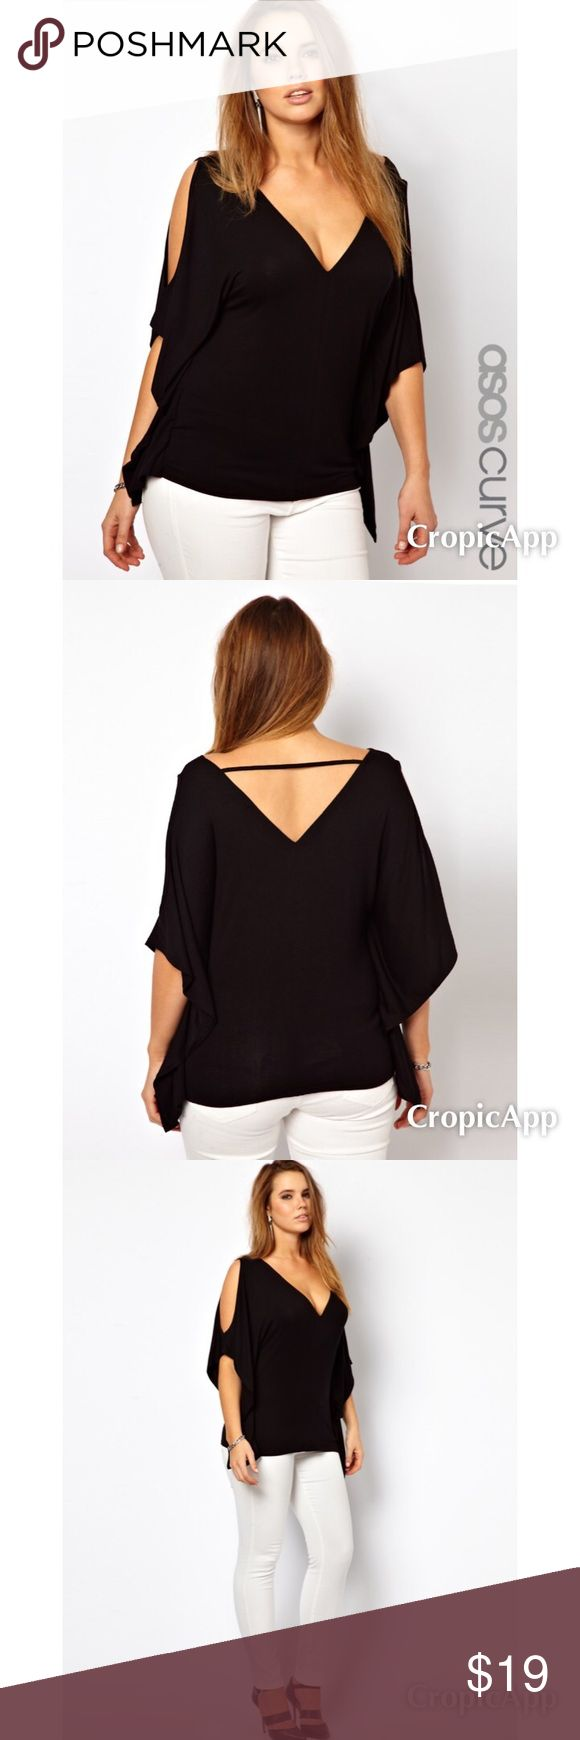 ASOS Curve Exclusive T-Shirt with Batwing Sleeves ASOS Curve Exclusive T-Shirt with Batwing Sleeves - Black US 14. Great Condition :) ASOS Tops Tees - Short Sleeve